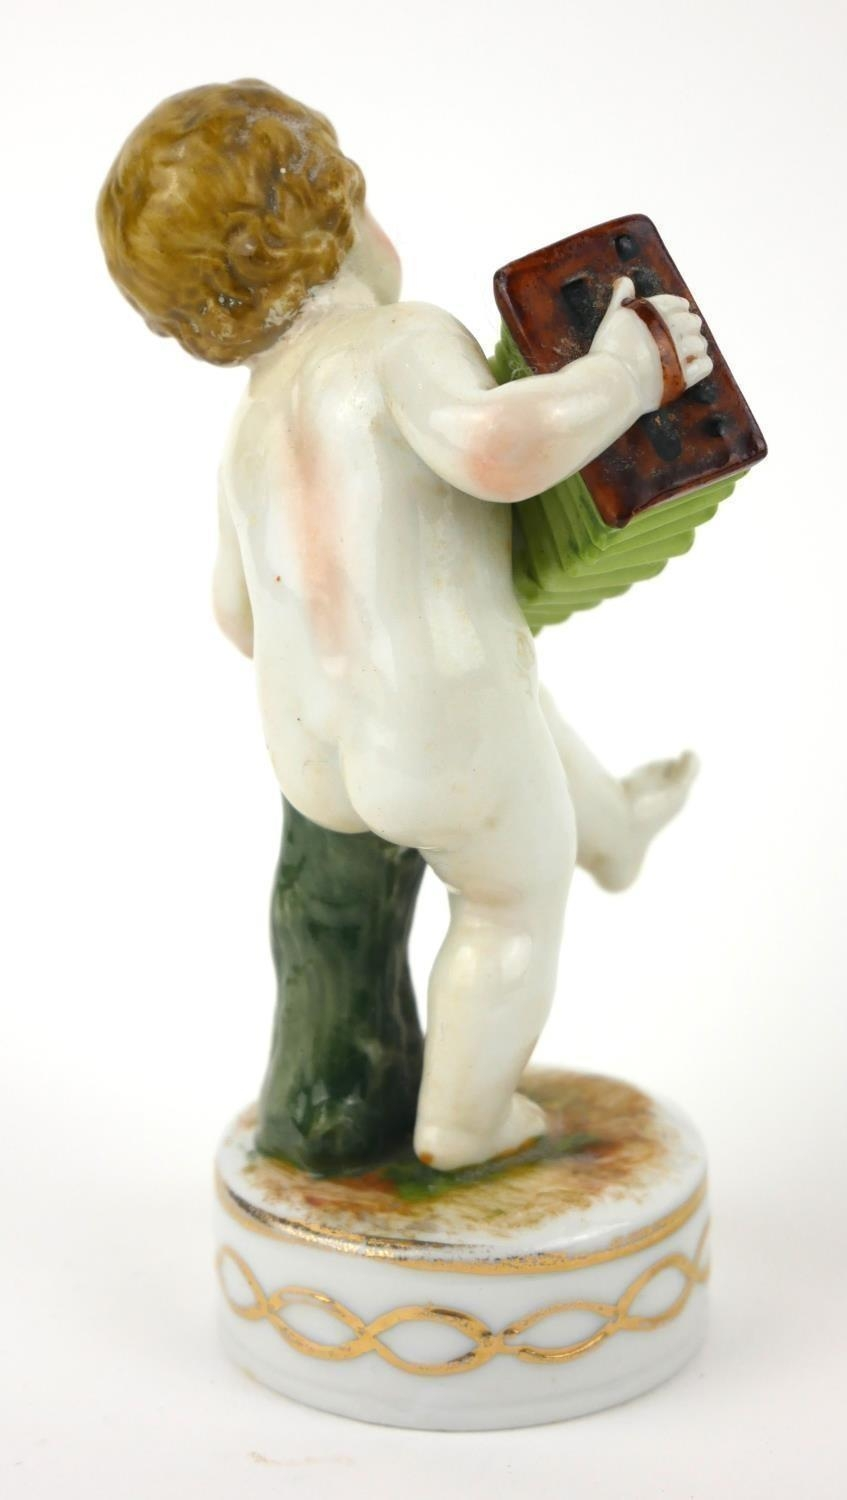 RAYMOND REYNET FOR ROSENTHAL, AN AMUSING PORCELAIN NOVELTY TRINKET BOX AND COVER, CIRCA 1960 - Image 3 of 9